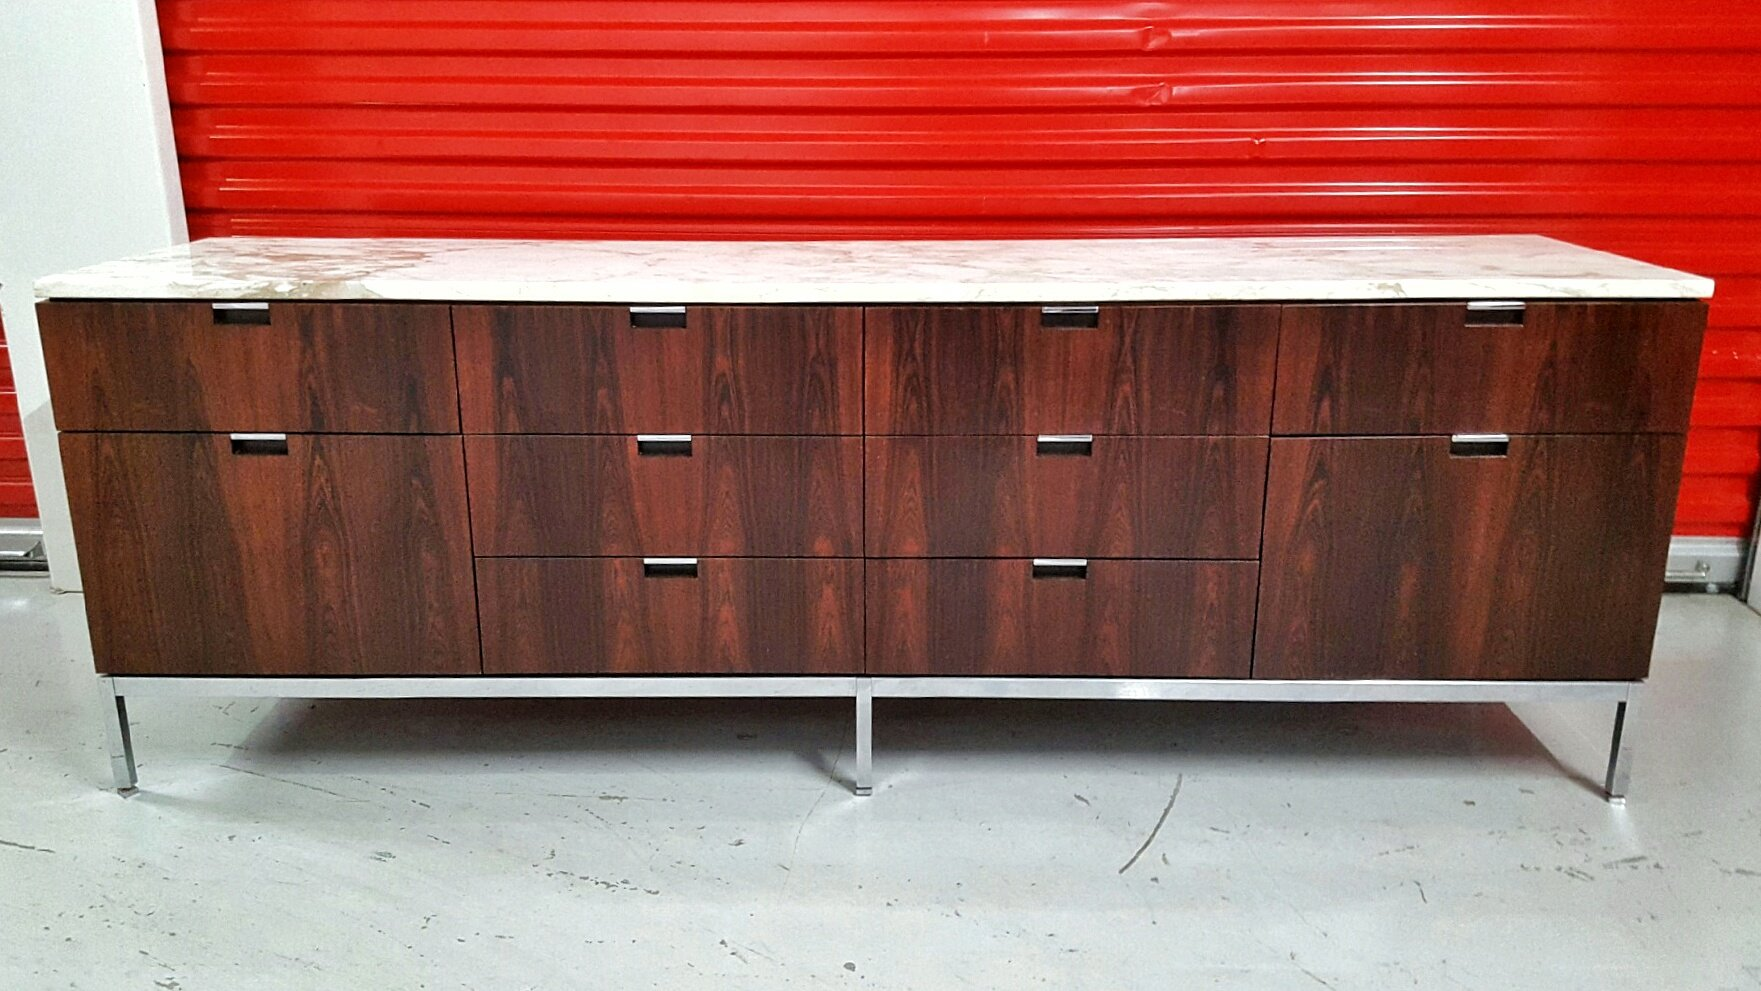 Brazilian Rosewood Credenza with a Carrara Marble Top by Florence